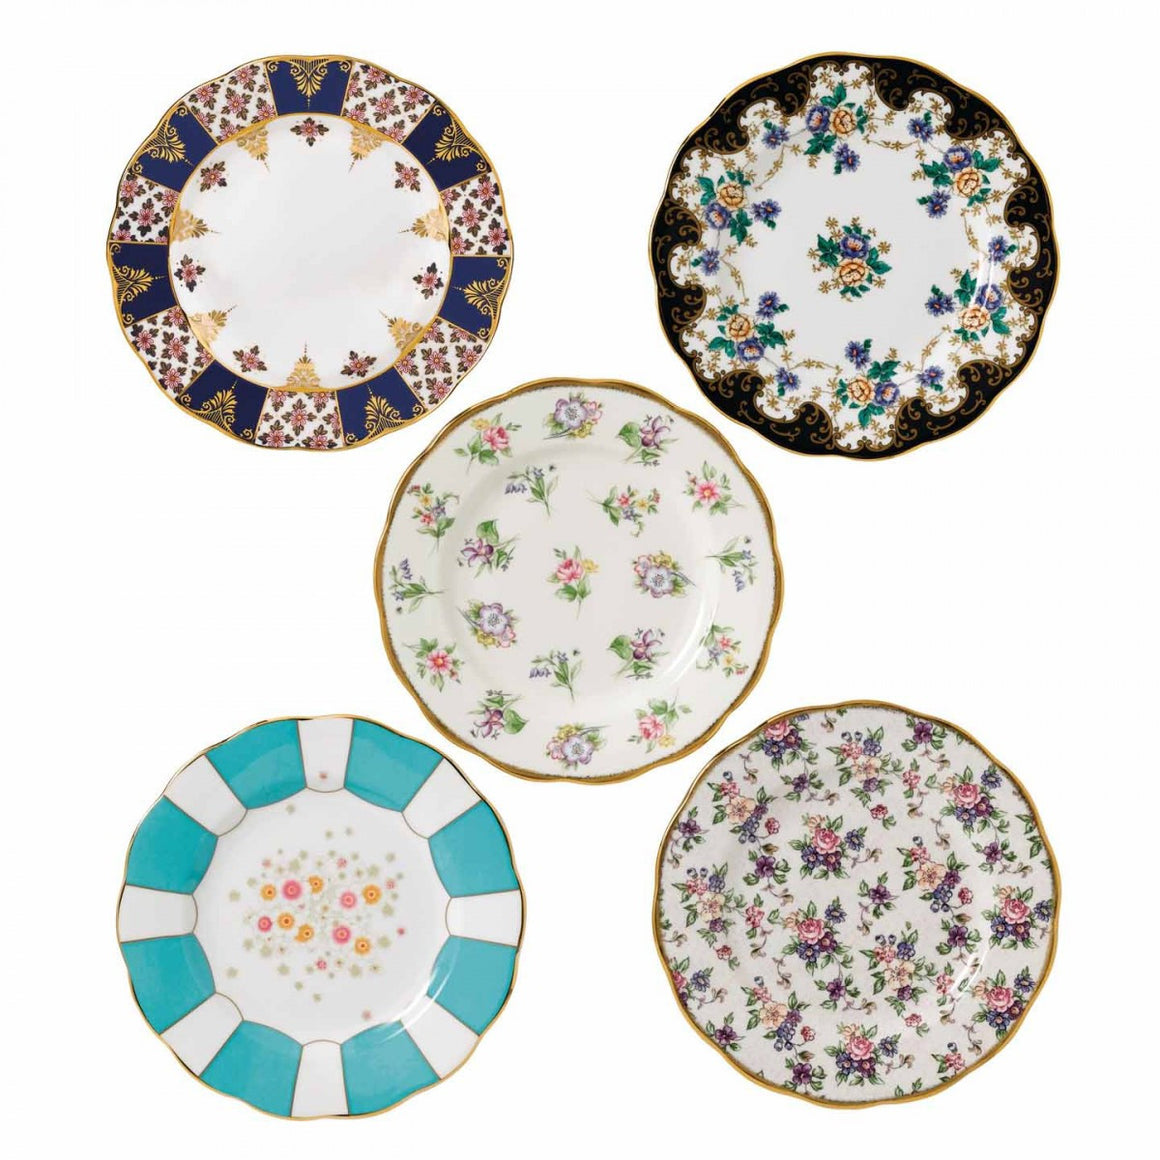 Royal Albert 1900 to 1940 Salad Plate 20cm (Set of 5)